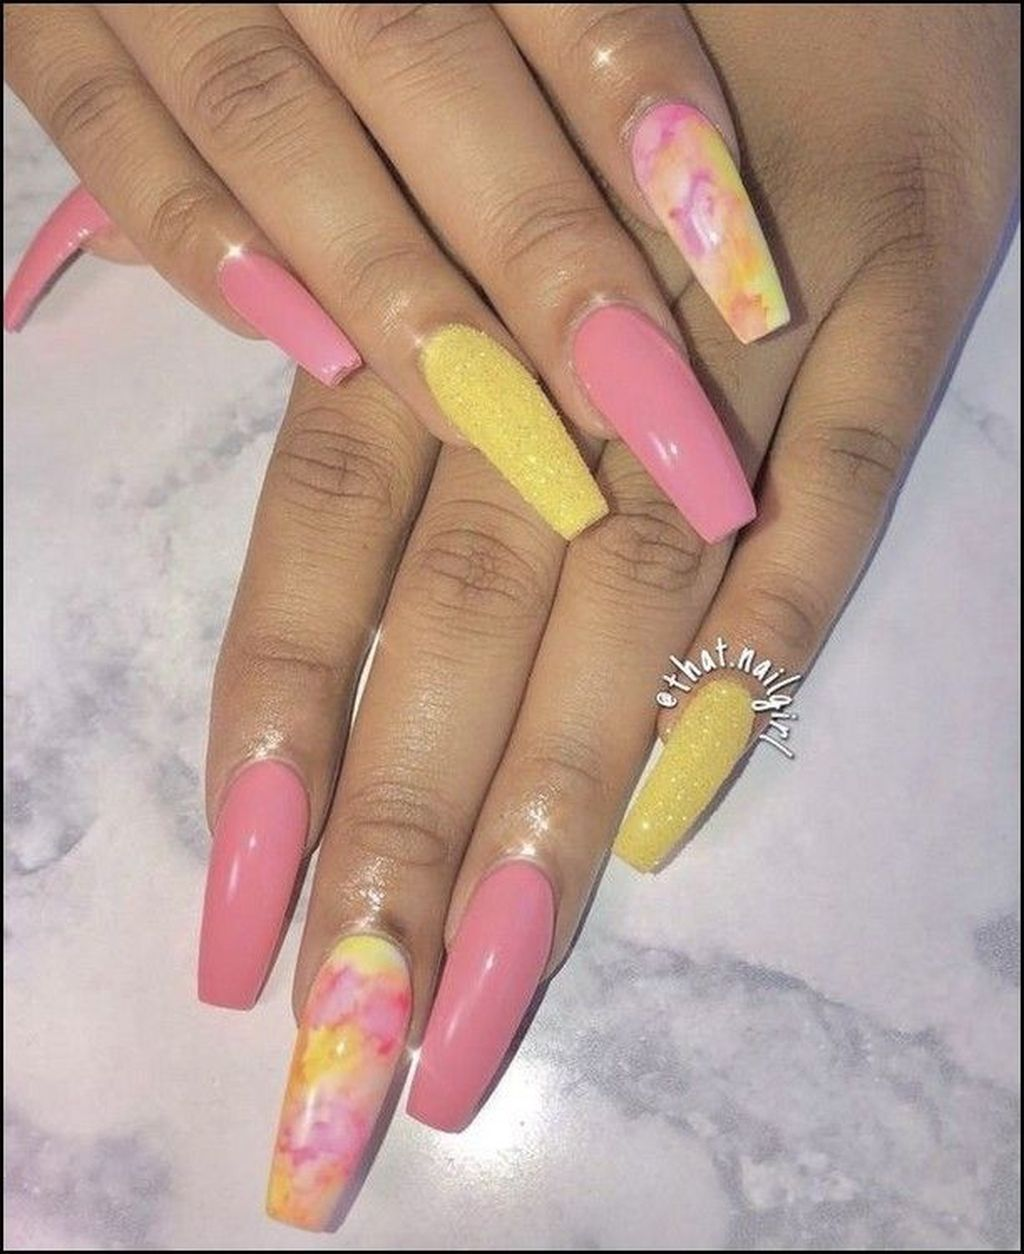 44 Casual Acrylic Nail Art Designs Ideas To Fascinate Your Admirers Coffin Nails Designs Best Acrylic Nails Pretty Acrylic Nails